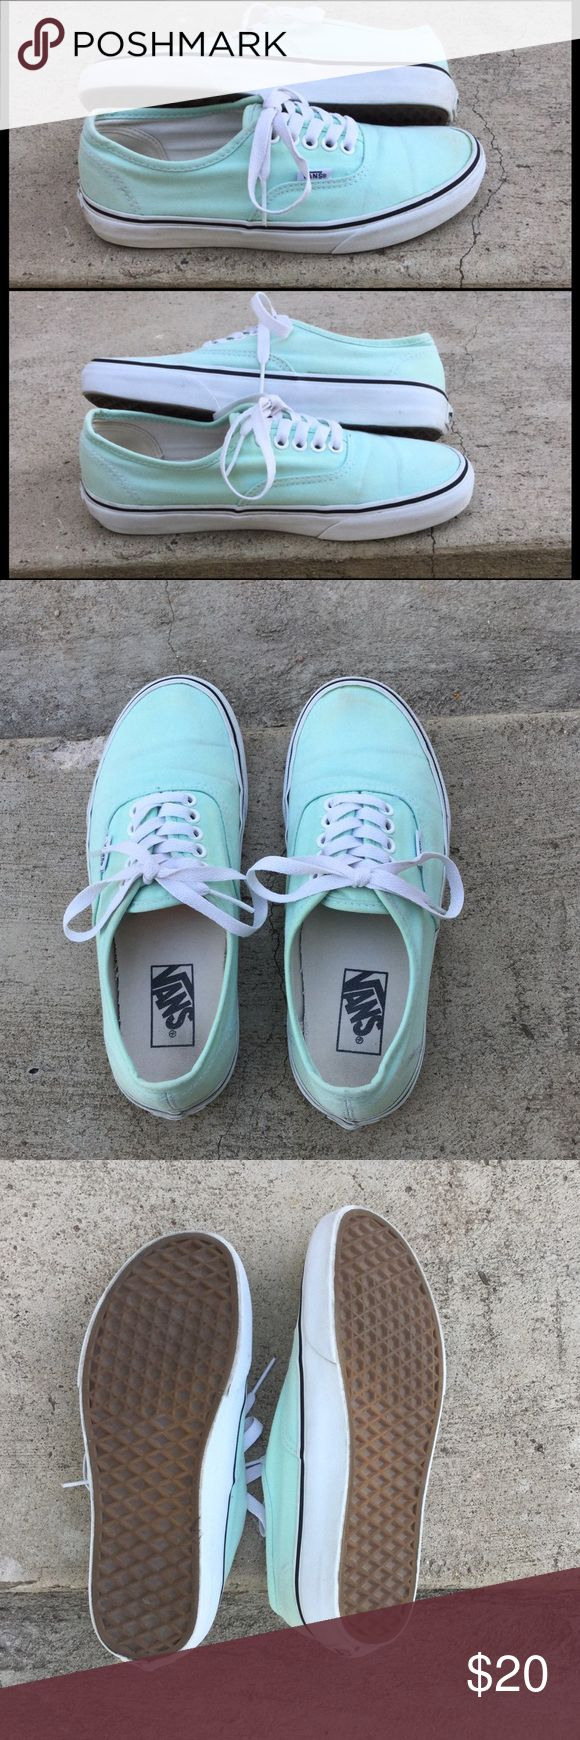 "Vans Sneakers ""Tiffany Blue"", aqua blue-green color. Well-loved but in great condition, and very clean. They do not come in the original box. *No trades. Vans Shoes Sneakers"